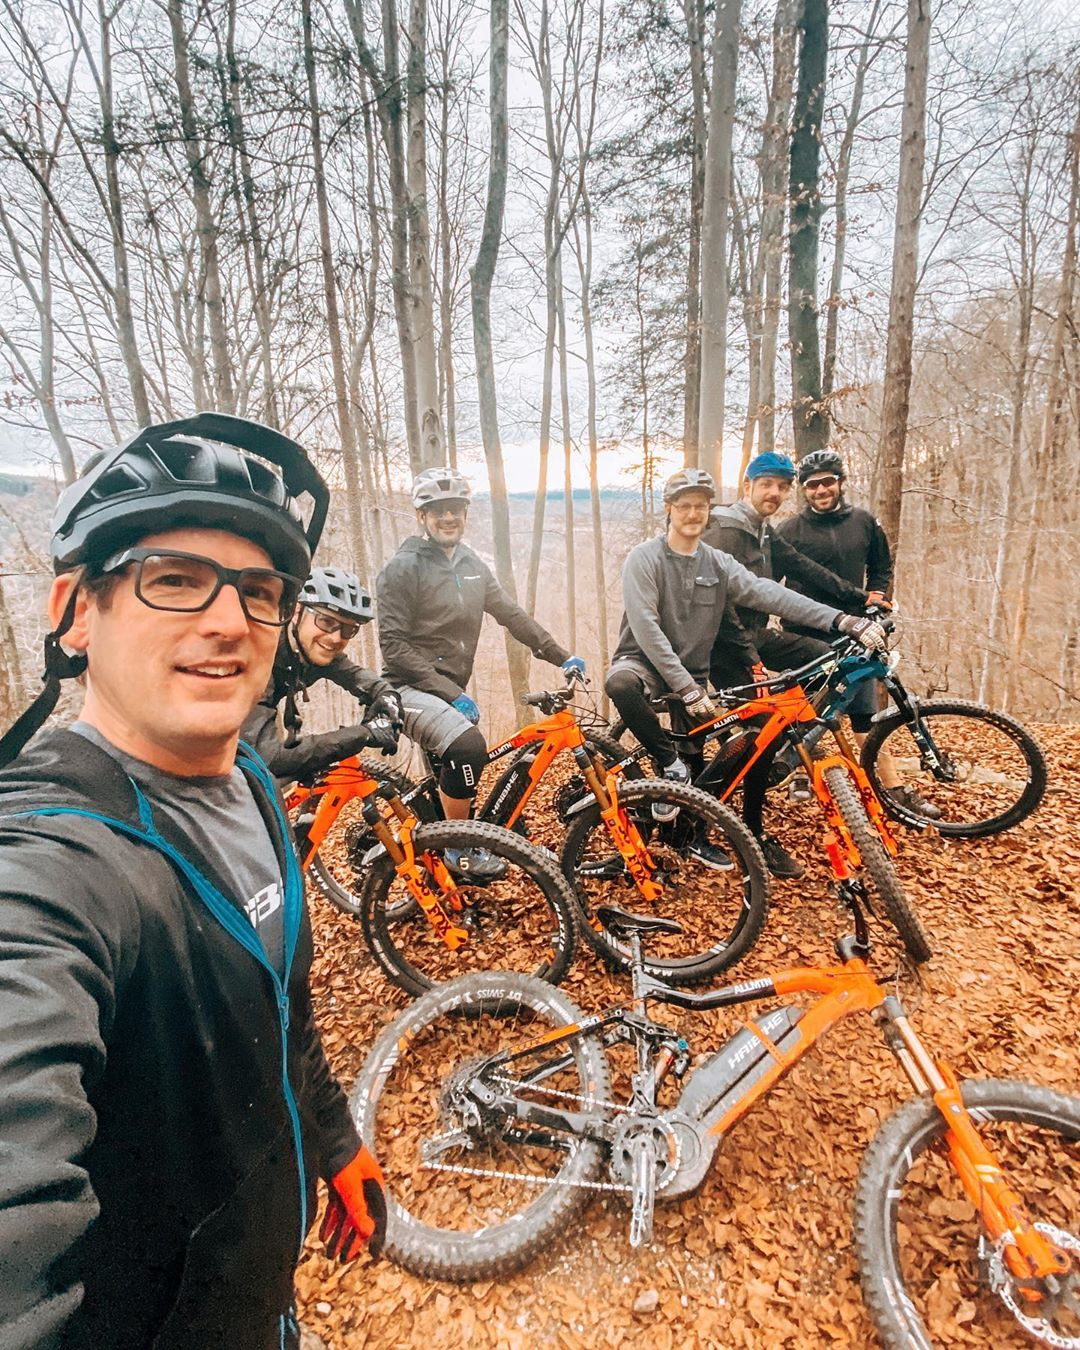 We can't think of a better way to end the work year than with an epic group ride to remind us how lucky we are to spend our days designing ebikes which can make life so fun! No mechanicals, no punctures, no crashes, just lots of laughs on this wonderful modern invention! Awesome! Thanks to everybody we have worked with this year, we are looking forward to more good times next year! #agencylife #eebit #emtb #ebike #haibike #ride100percent #design #bikedesign #yamaha